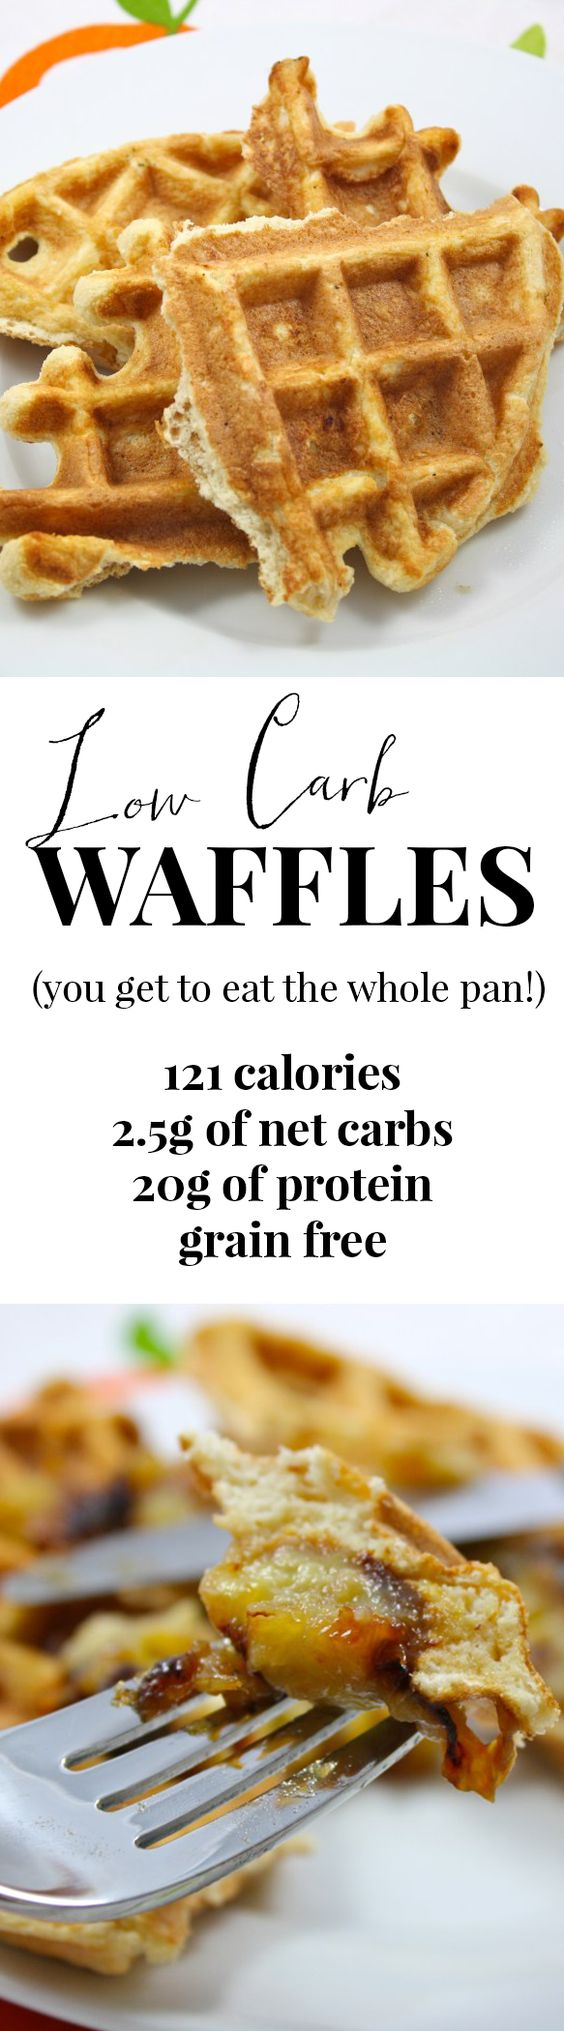 120 calories for the whole tray!! That's FOUR waffles. Not to mention they pack 20g of protein and are low carb, grain free, and AMAZINGLY delicious. I'm hooked!